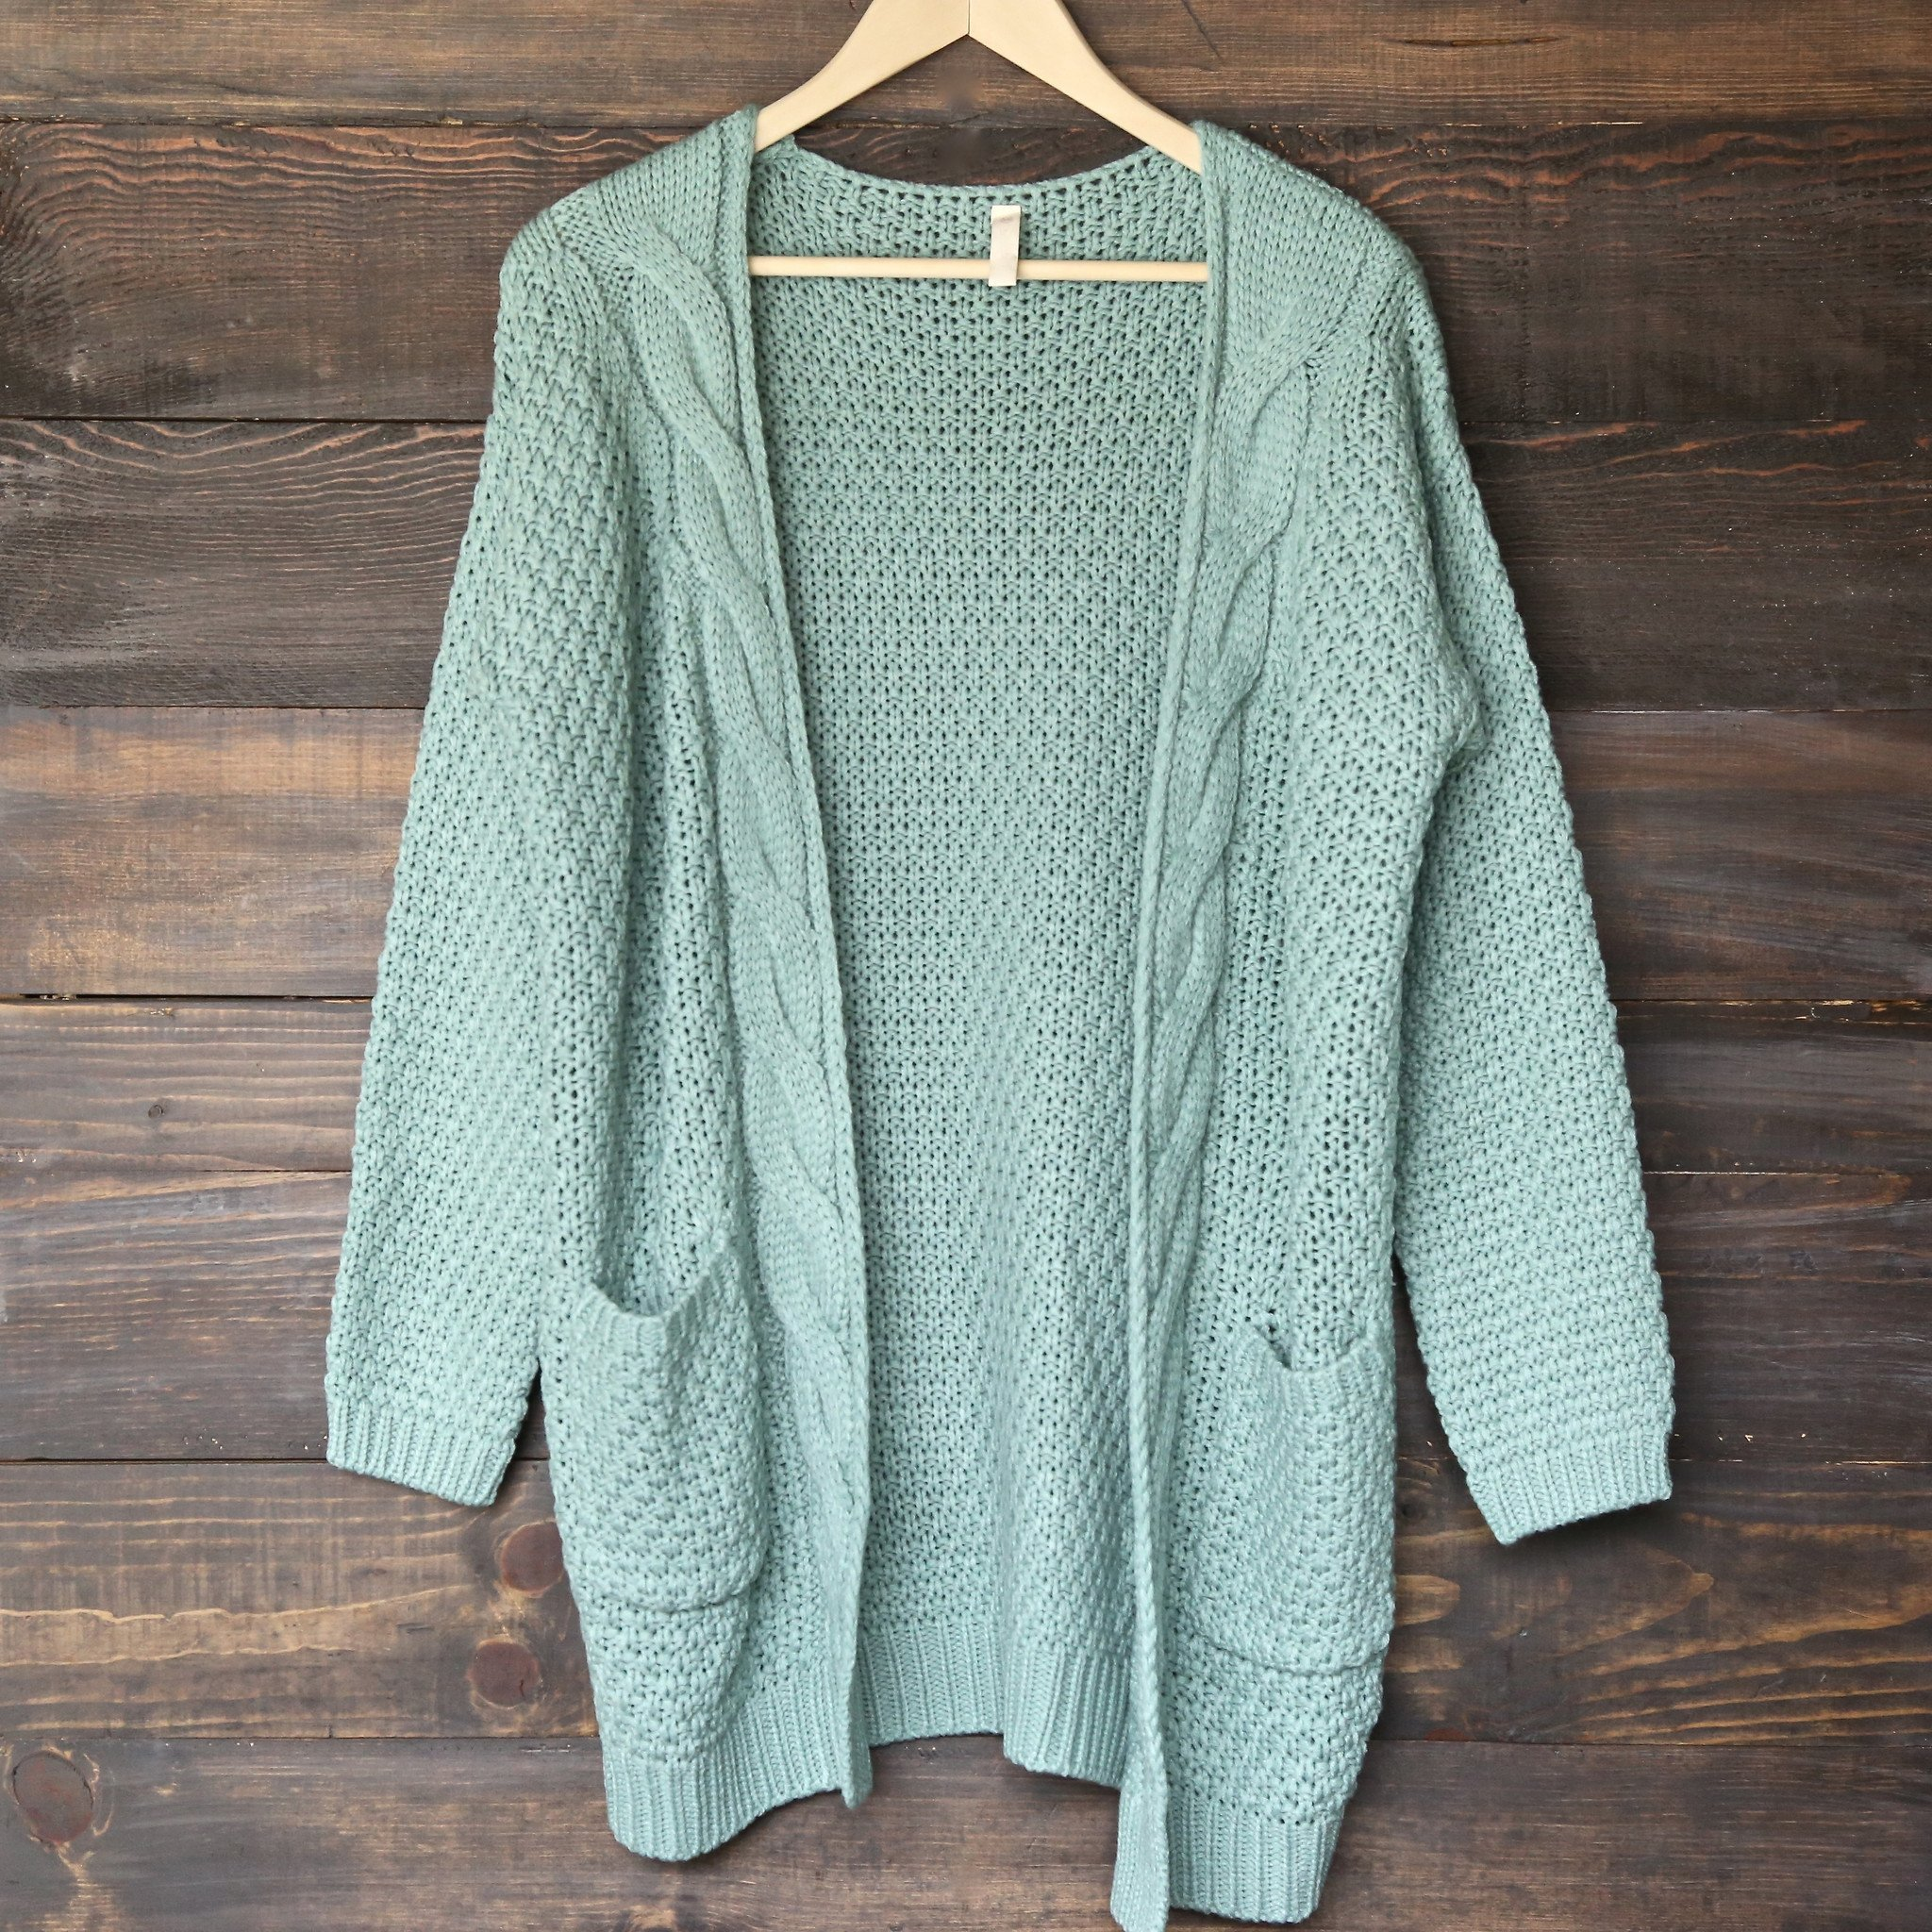 Image of Late At Night Open Front Cable Knit Cardigan Sweater in Mint